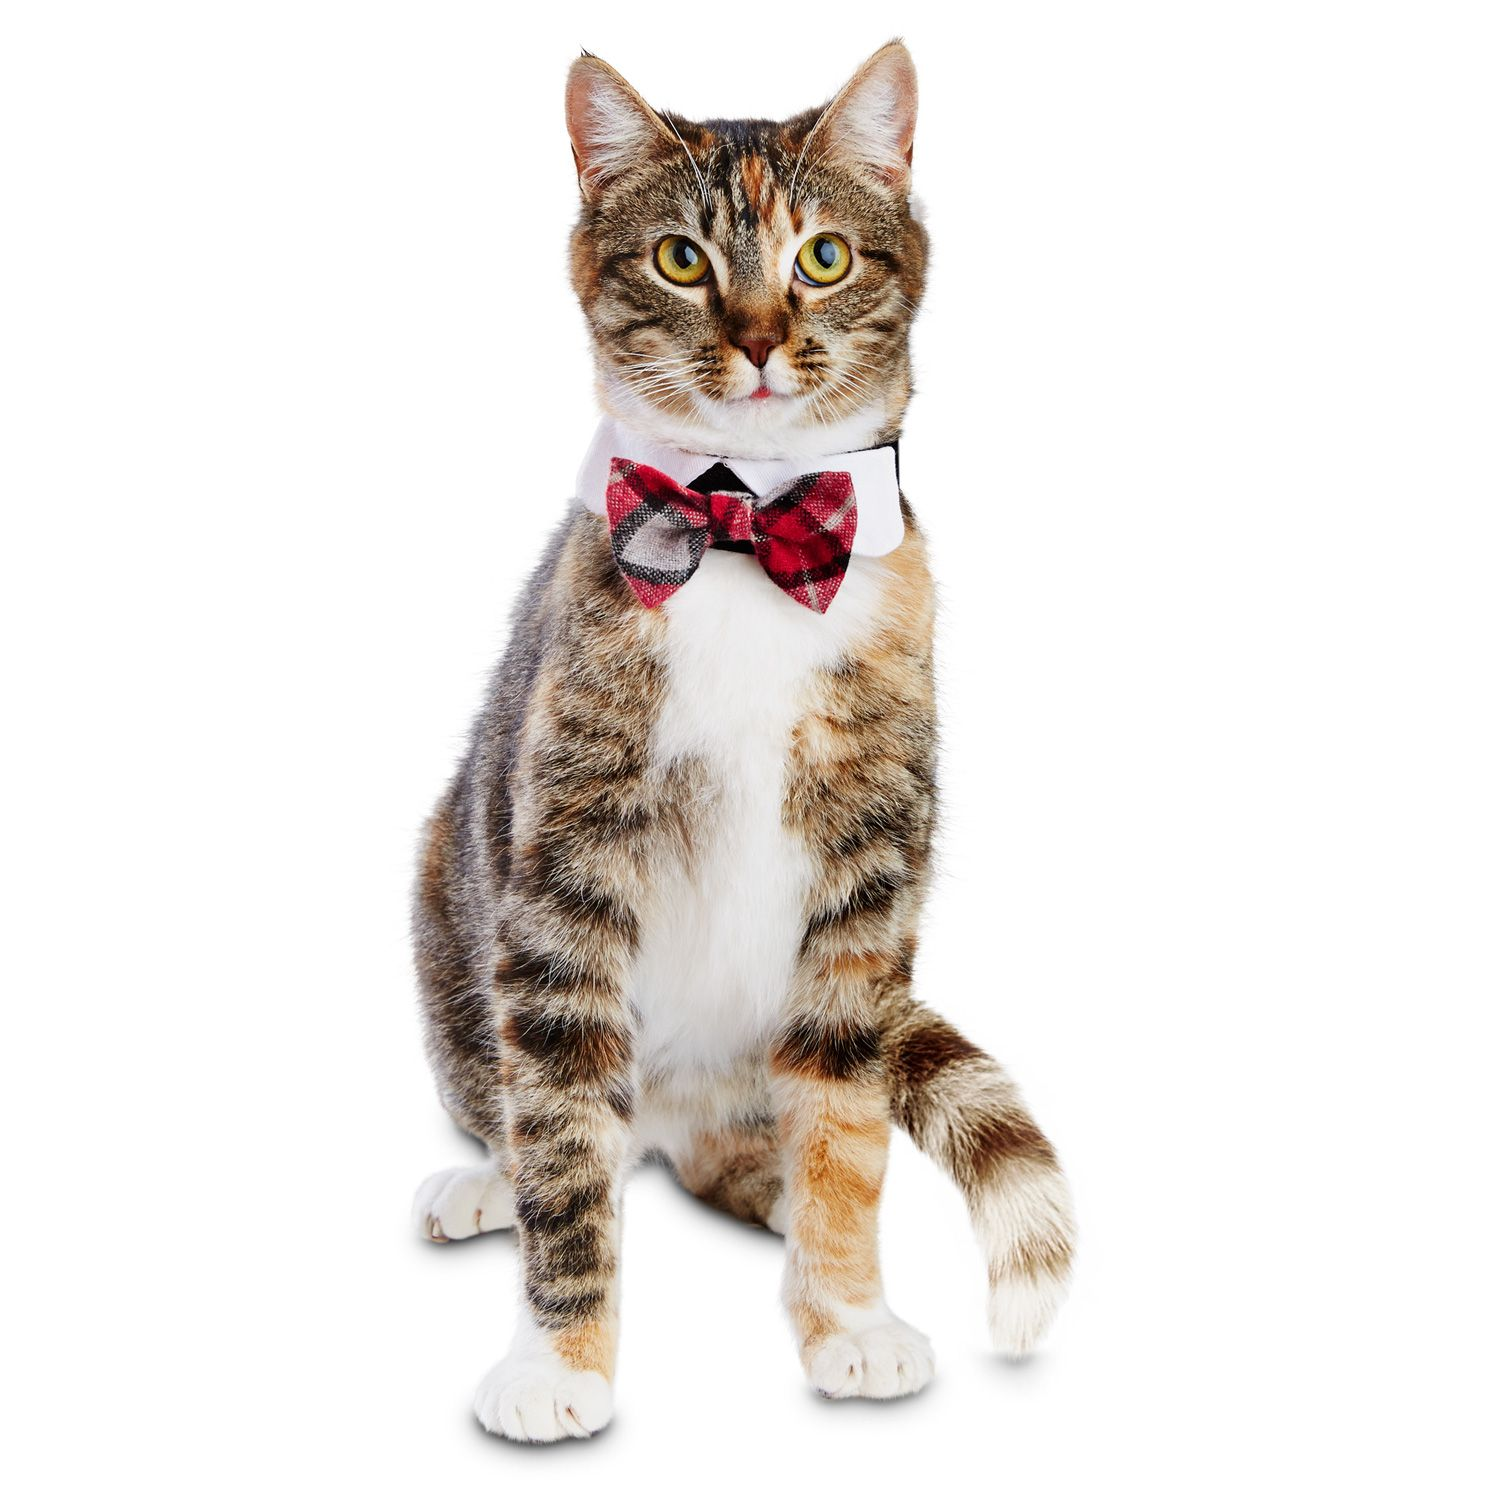 Petco Holiday Red Plaid Bowtie Cat Costume  sc 1 st  Pinterest & Petco Holiday Red Plaid Bowtie Cat Costume | Xmas Kitty | Pinterest ...